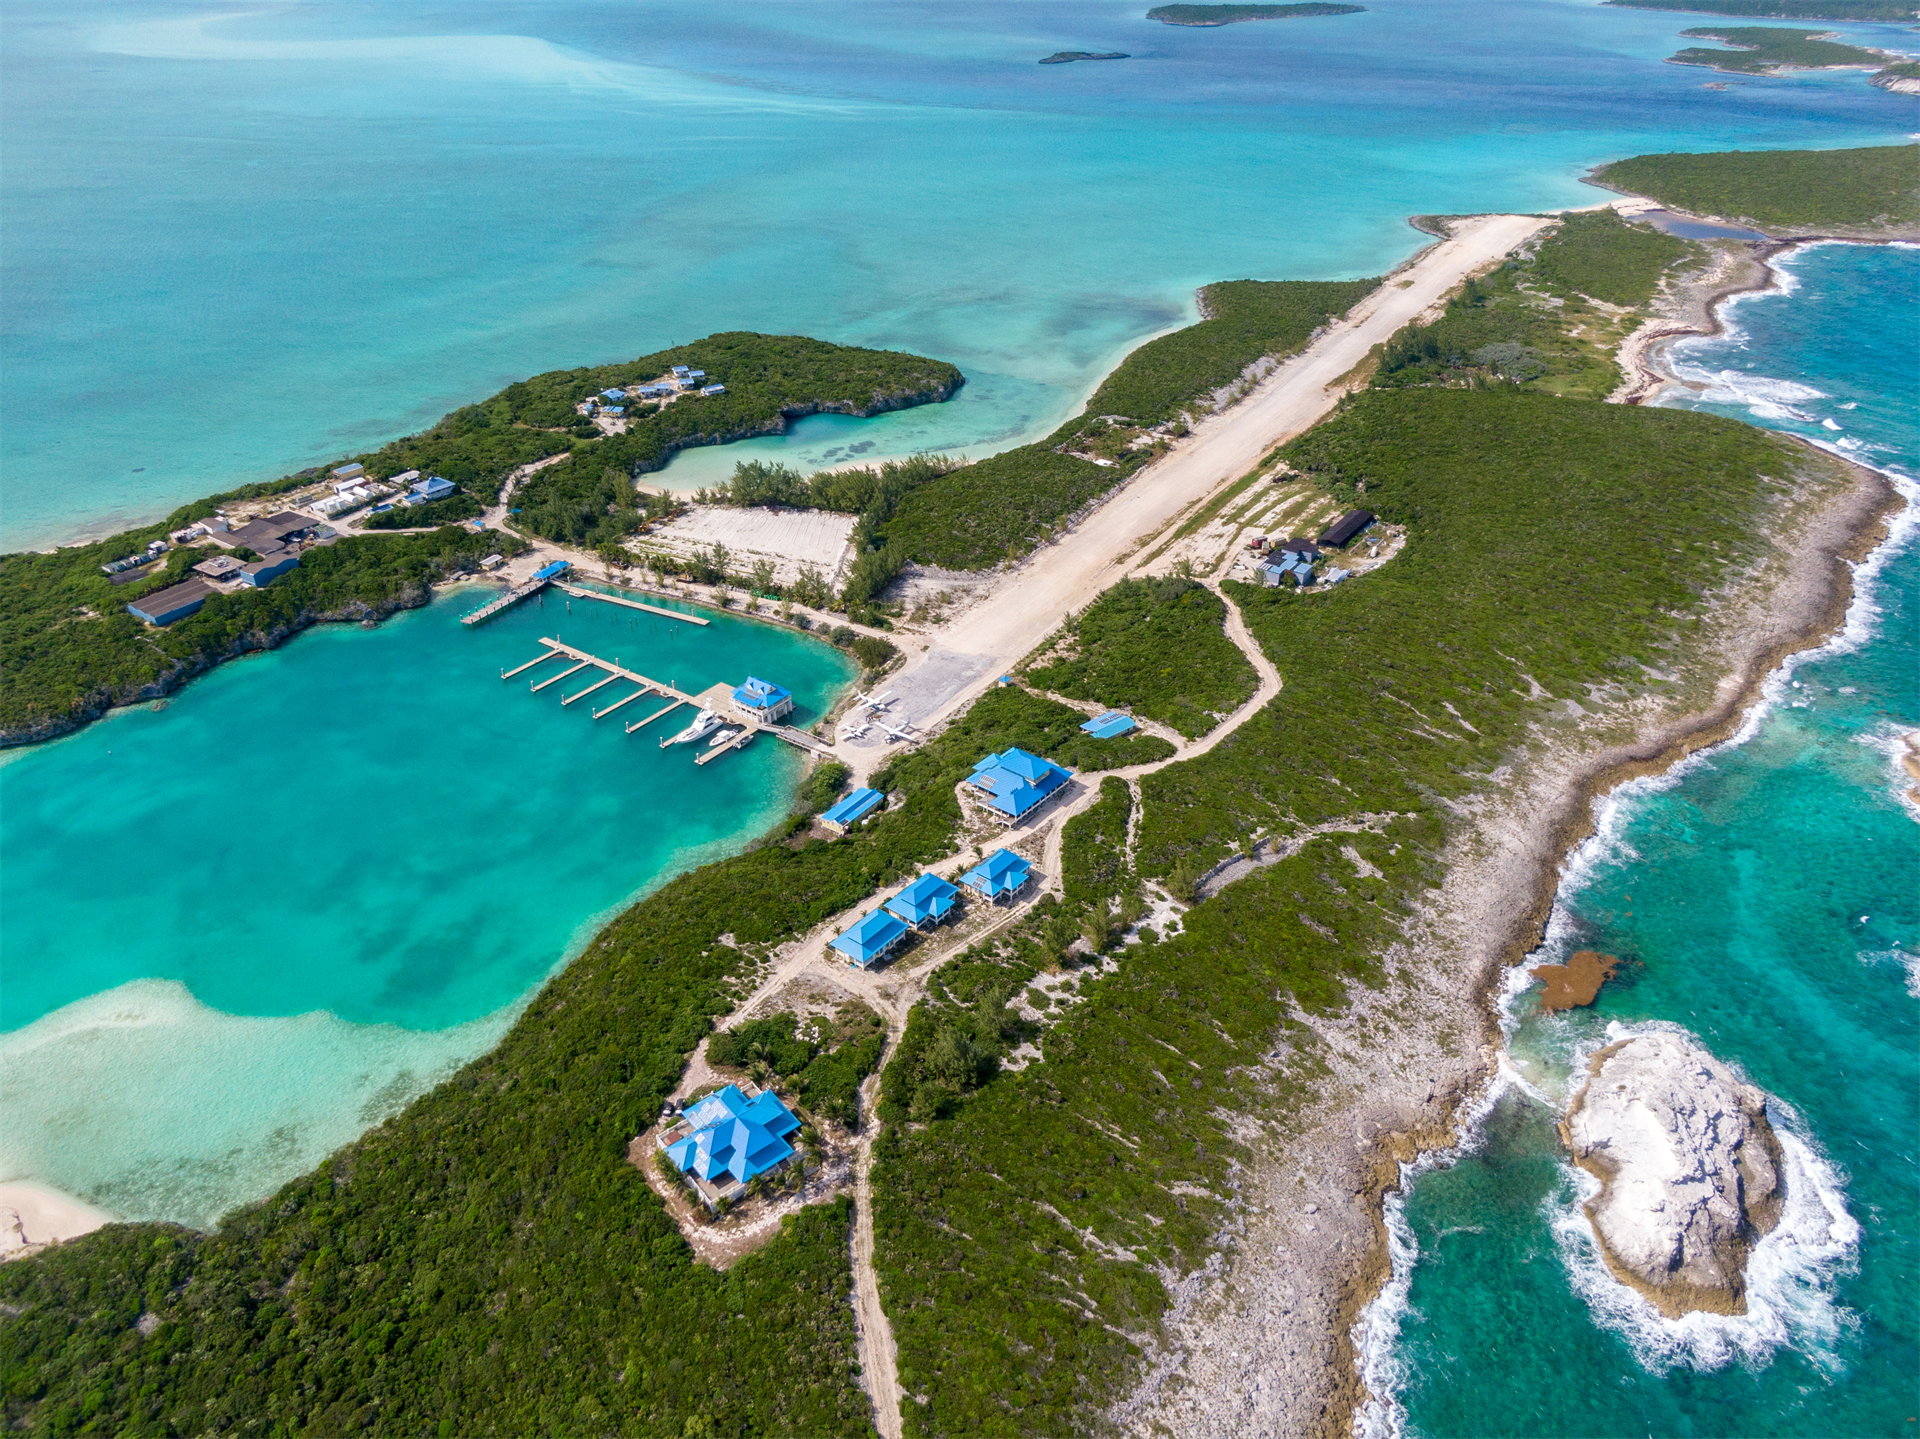 3. Private Islands for Sale at Exuma Cays, Exuma Bahamas